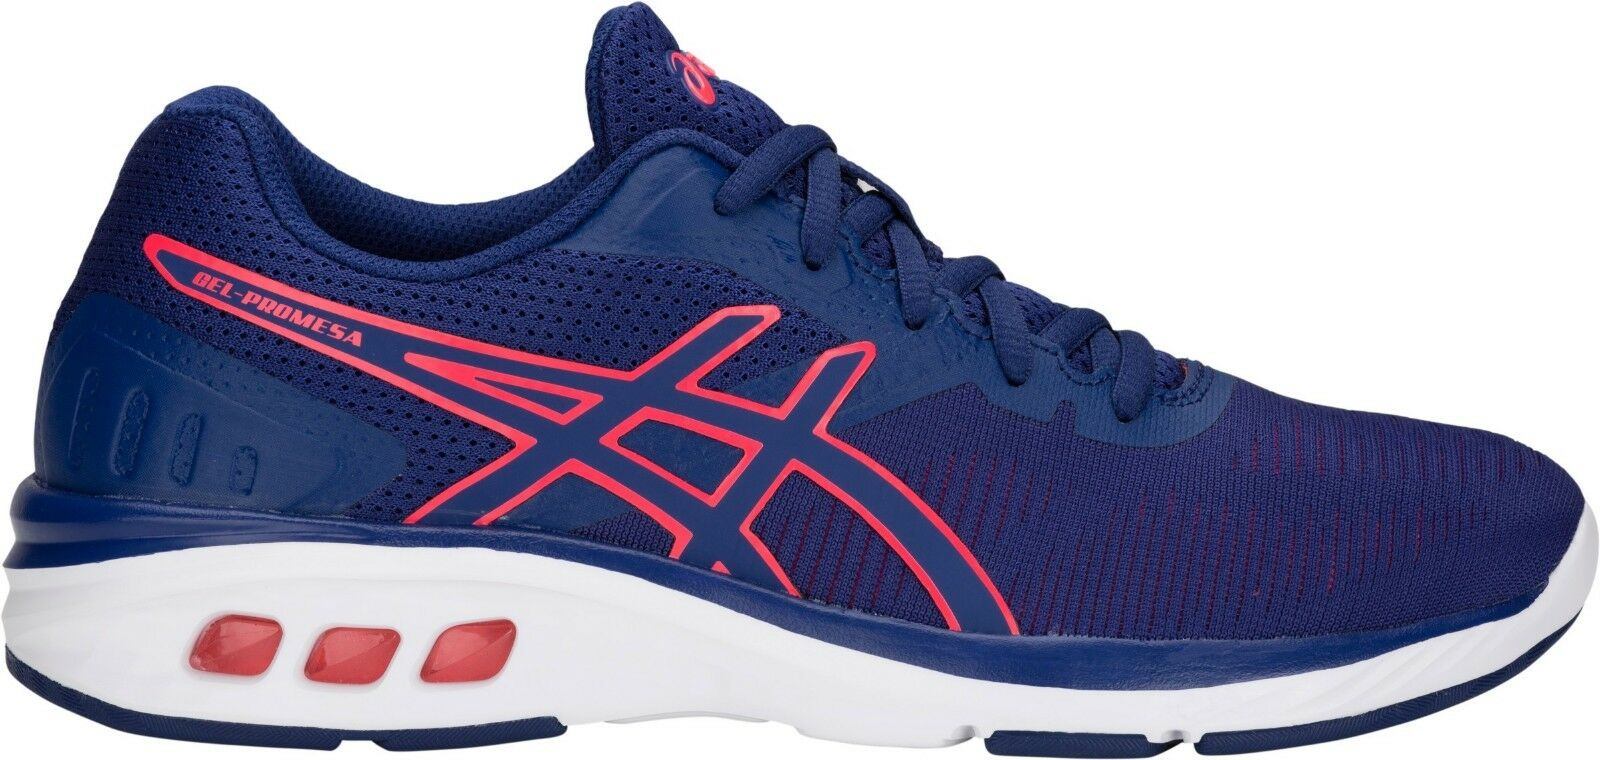 Brand New | Asics Gel Promesa Donna Performance Running Shoes (B) (400)